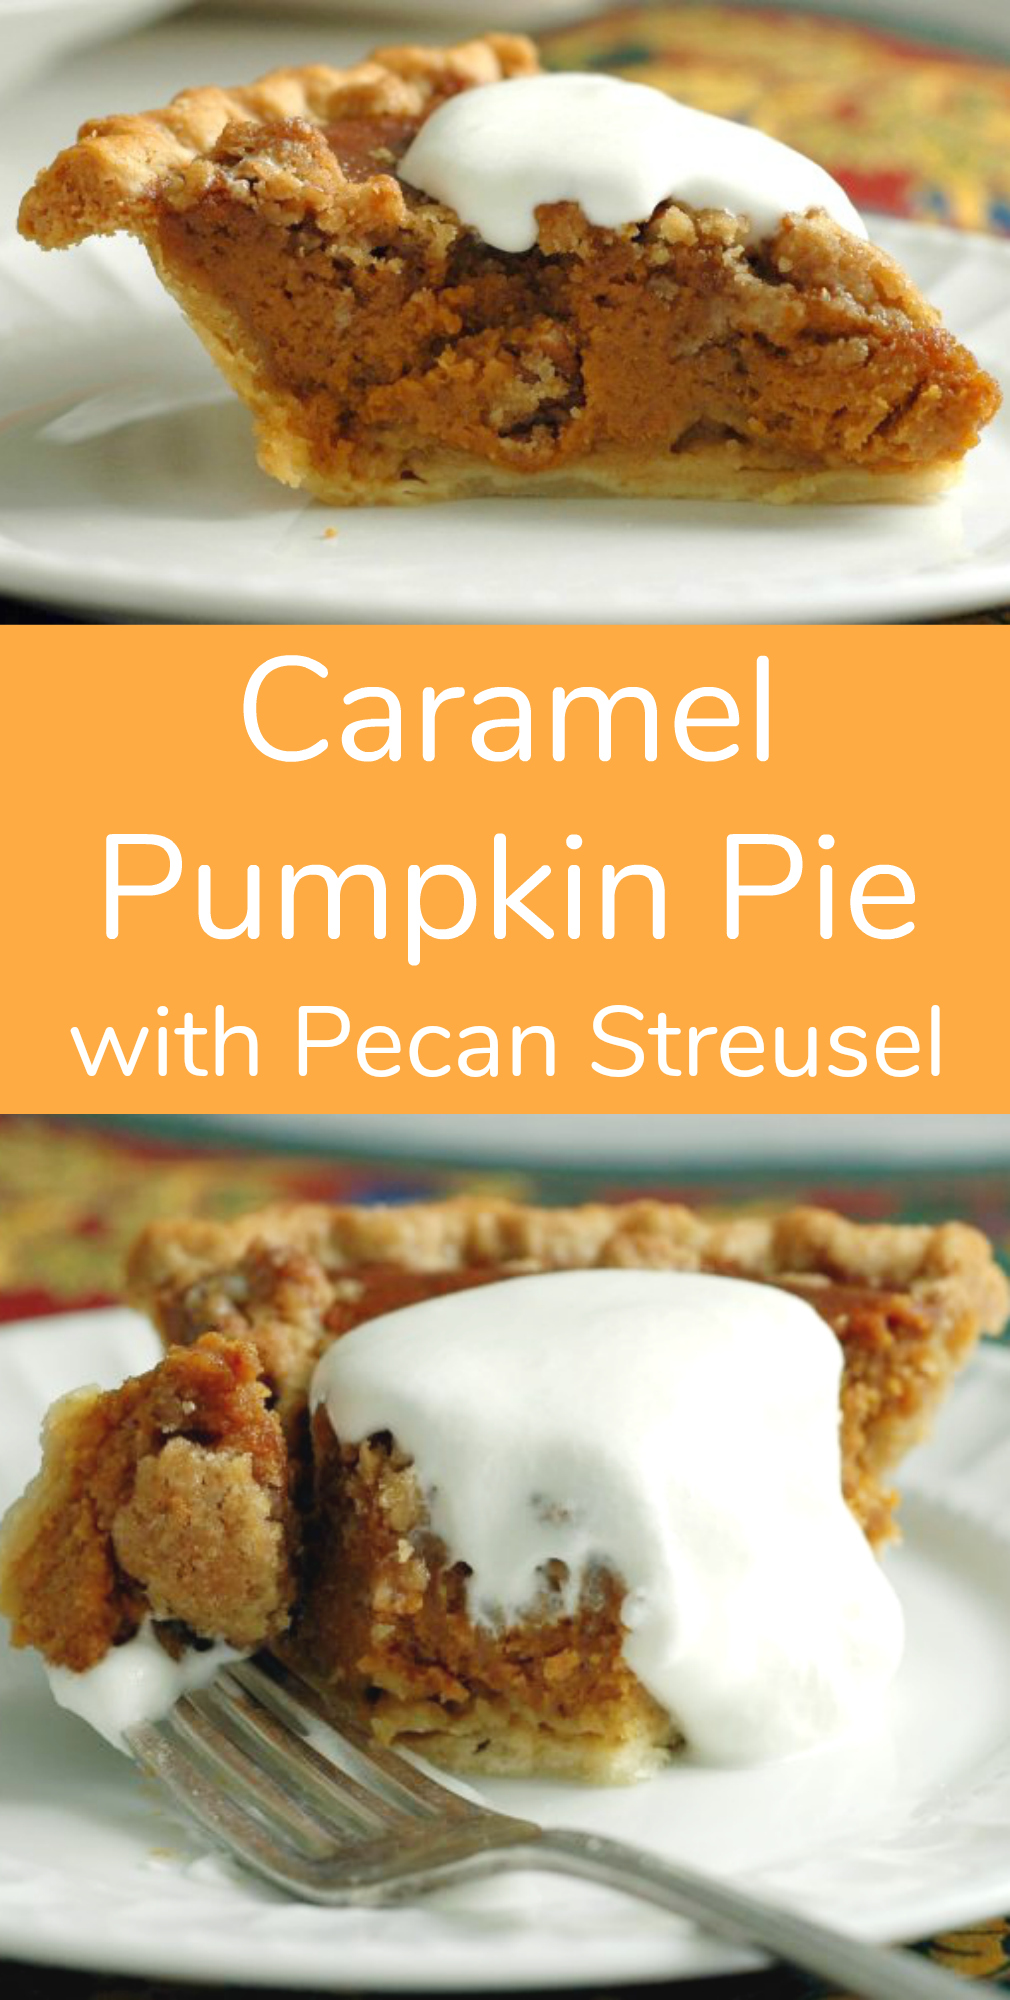 Caramel Pumpkin Pie with Pecan Streusel YUM